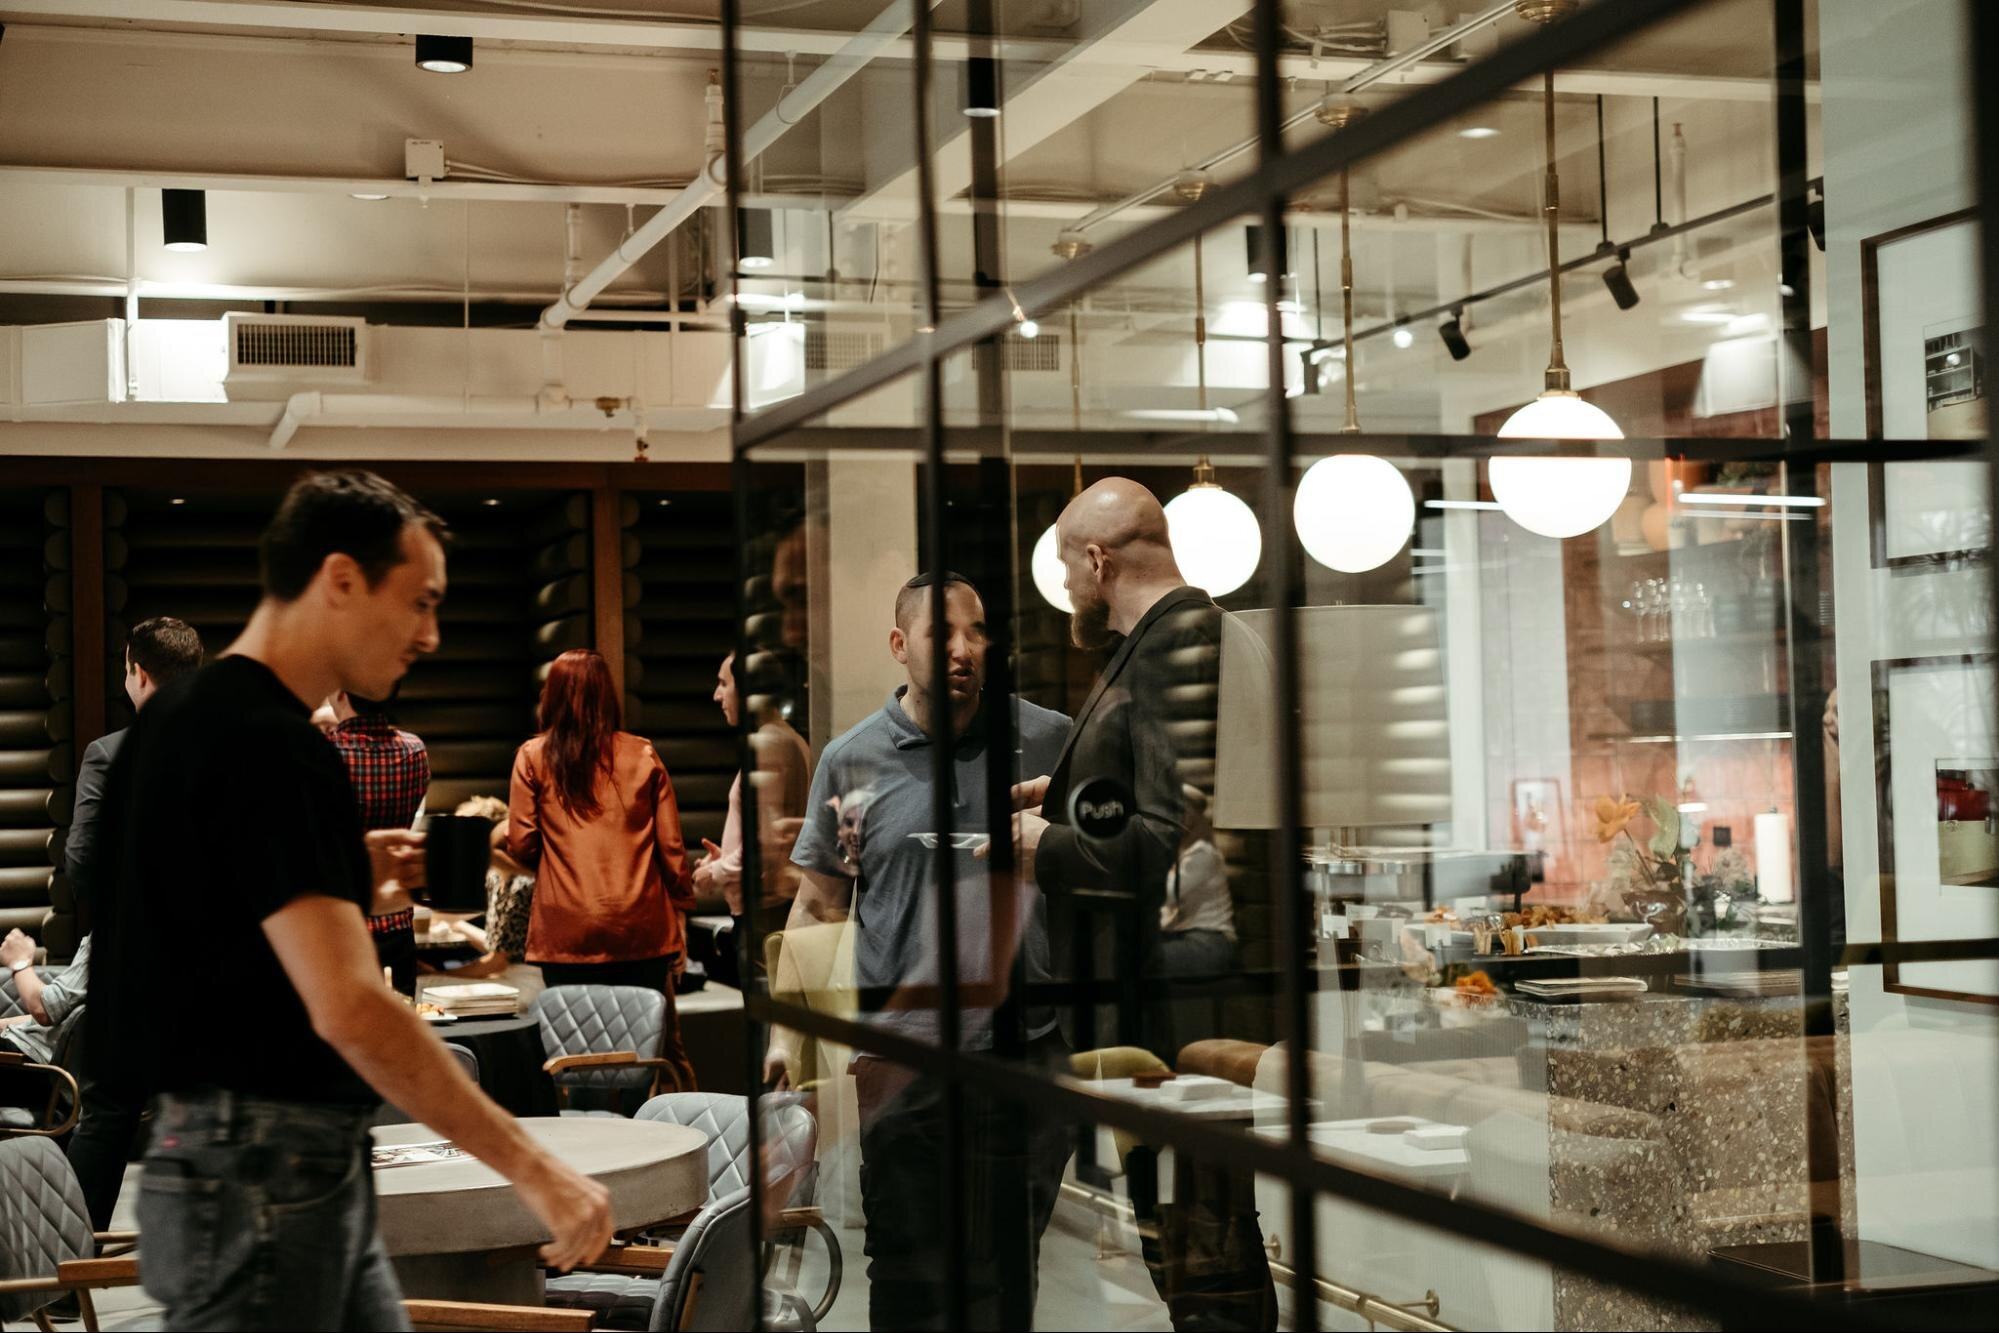 Company culture inside a coworking space